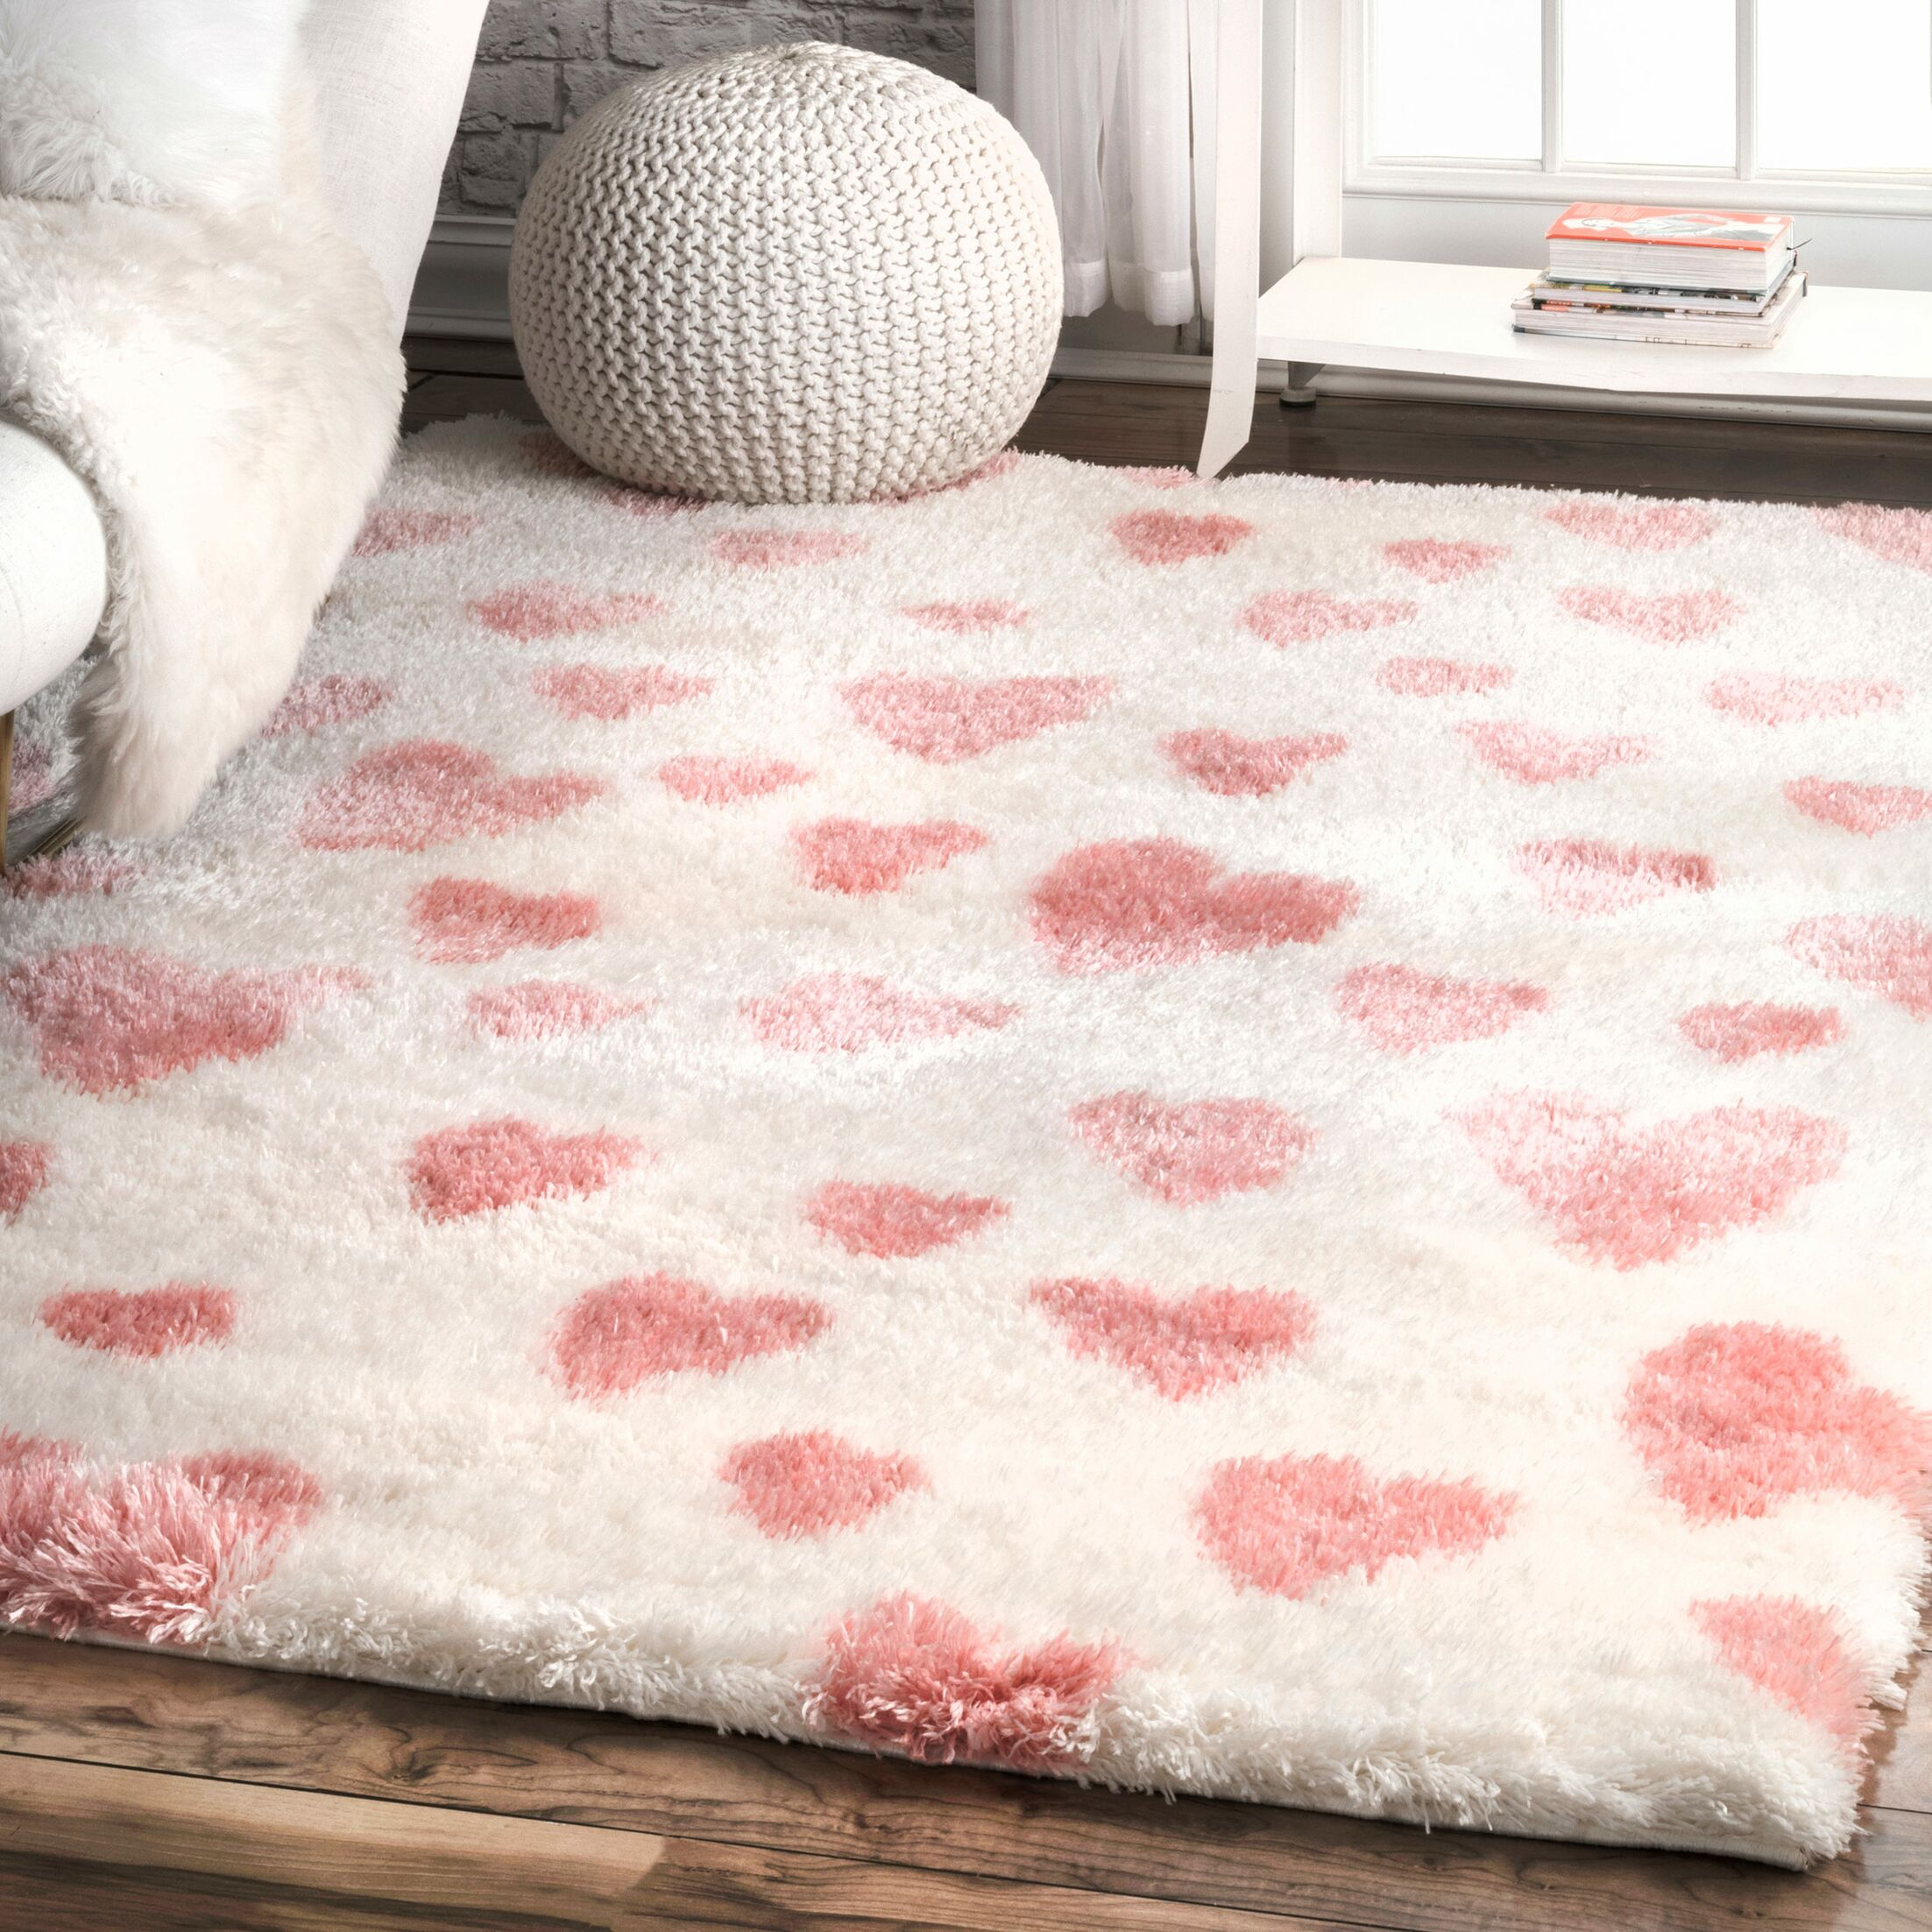 Becky Pink/White Area Rug Rug Size: Rectangle 5' 3